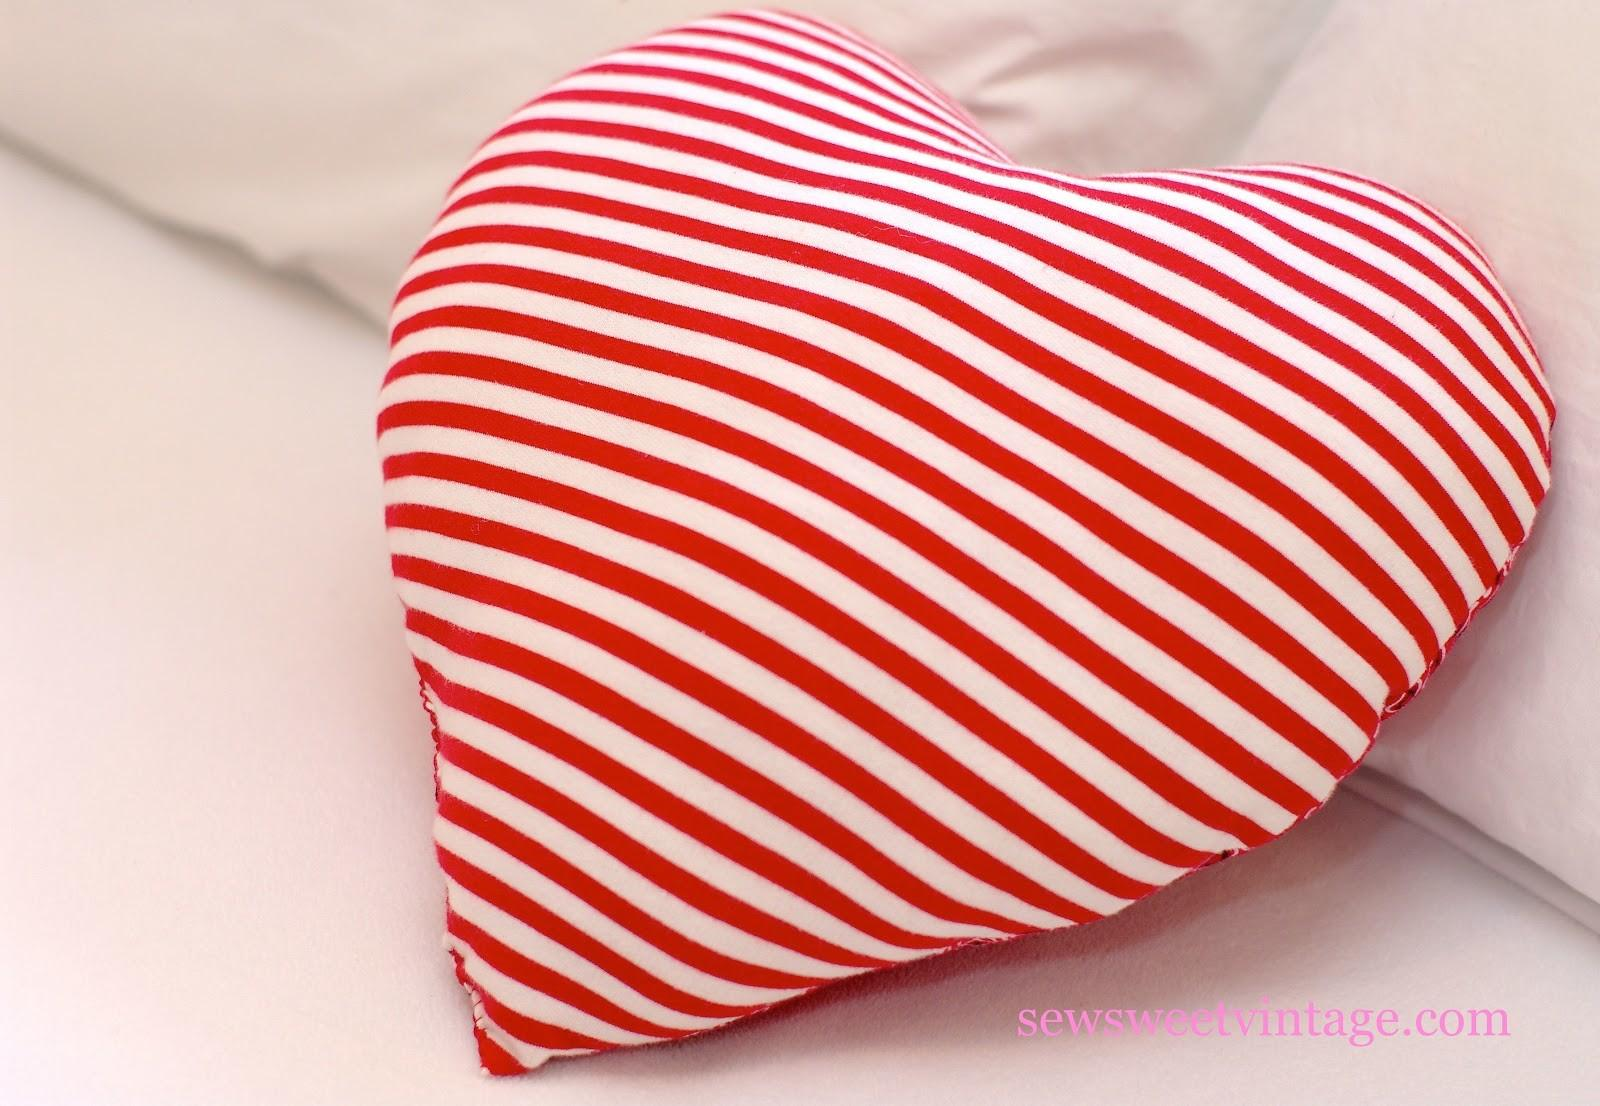 Sew Sweet Vintage Diy Heart Pillow